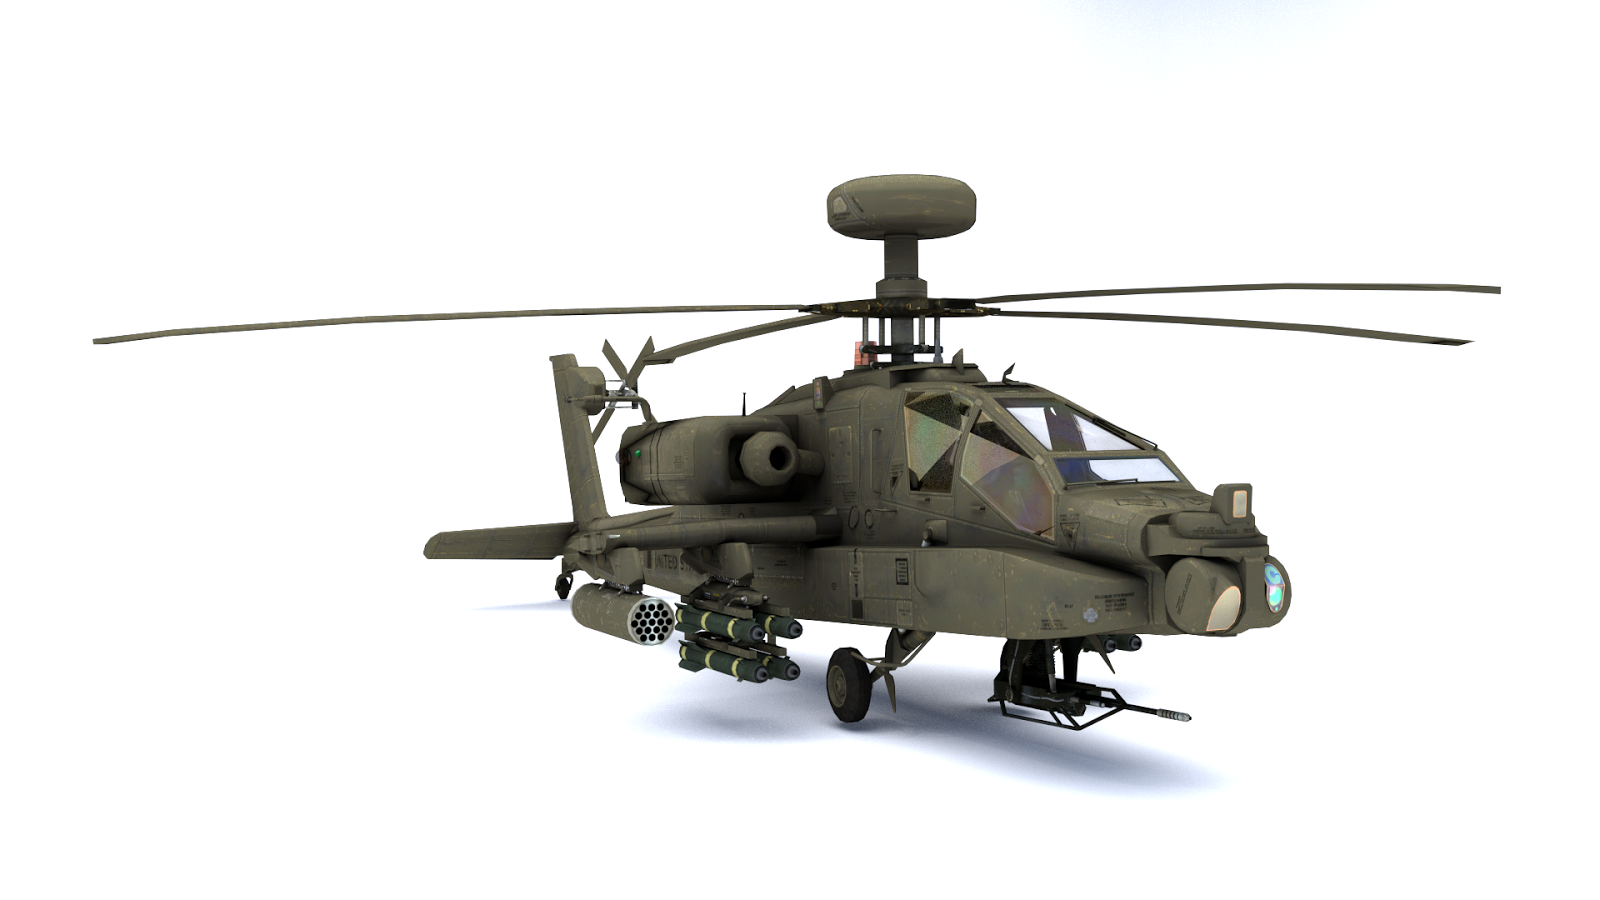 Apache Longbow Helicopter Wallpaper 3d-model us-apache-longbowApache Longbow Helicopter